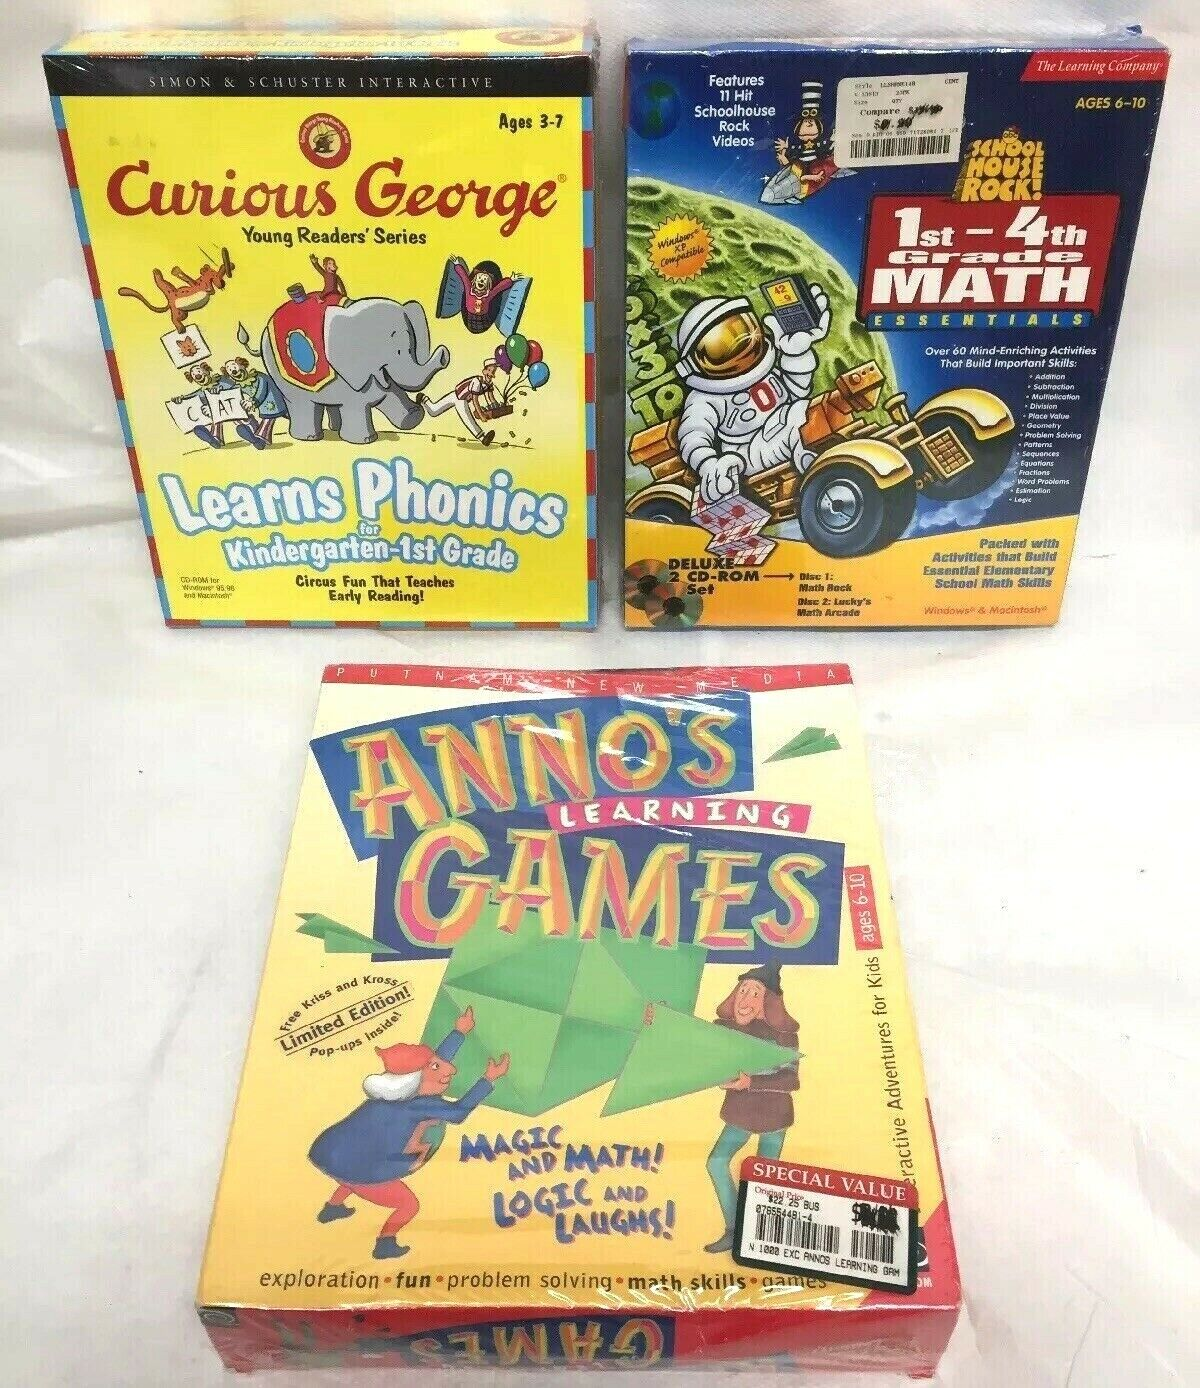 NEW Lot of 3 Children's Computer Games PC Learning Education